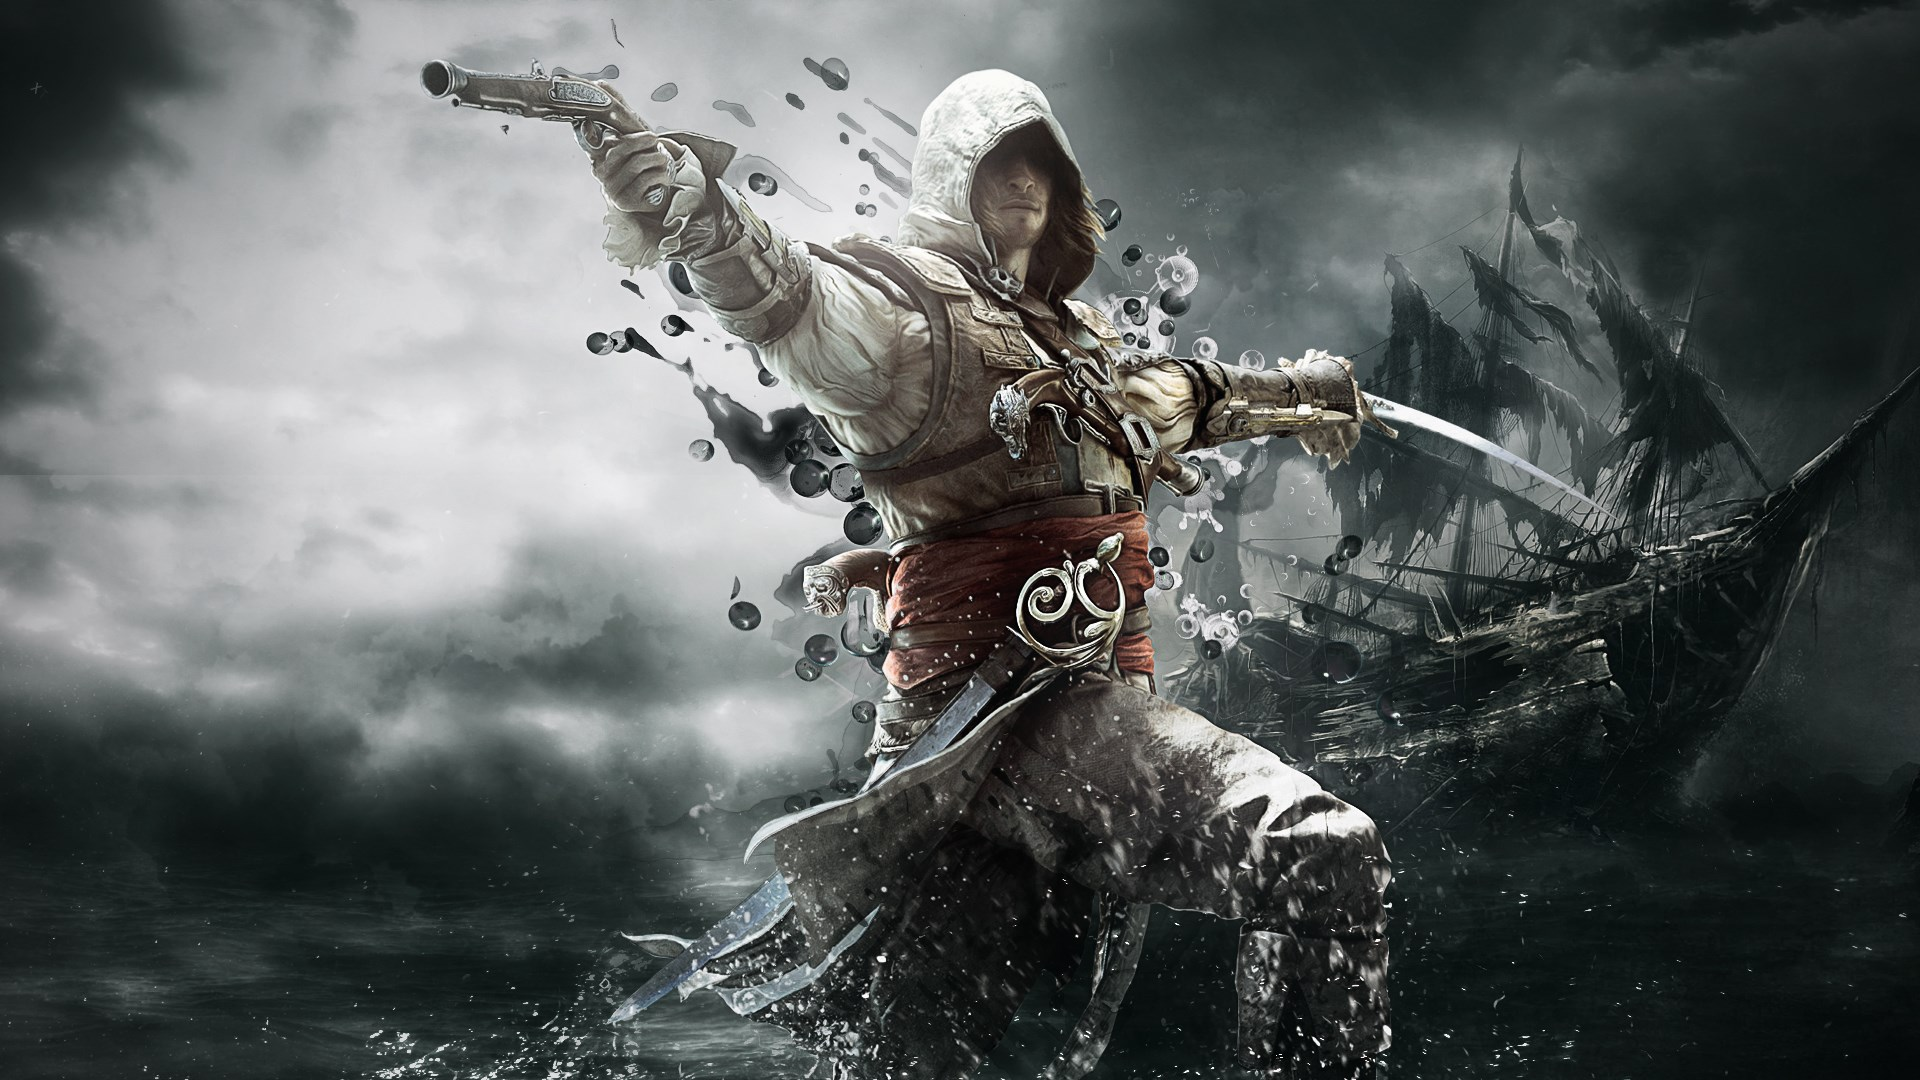 Assassins-Creed-4-Black-Flag-Wallpaper-HD